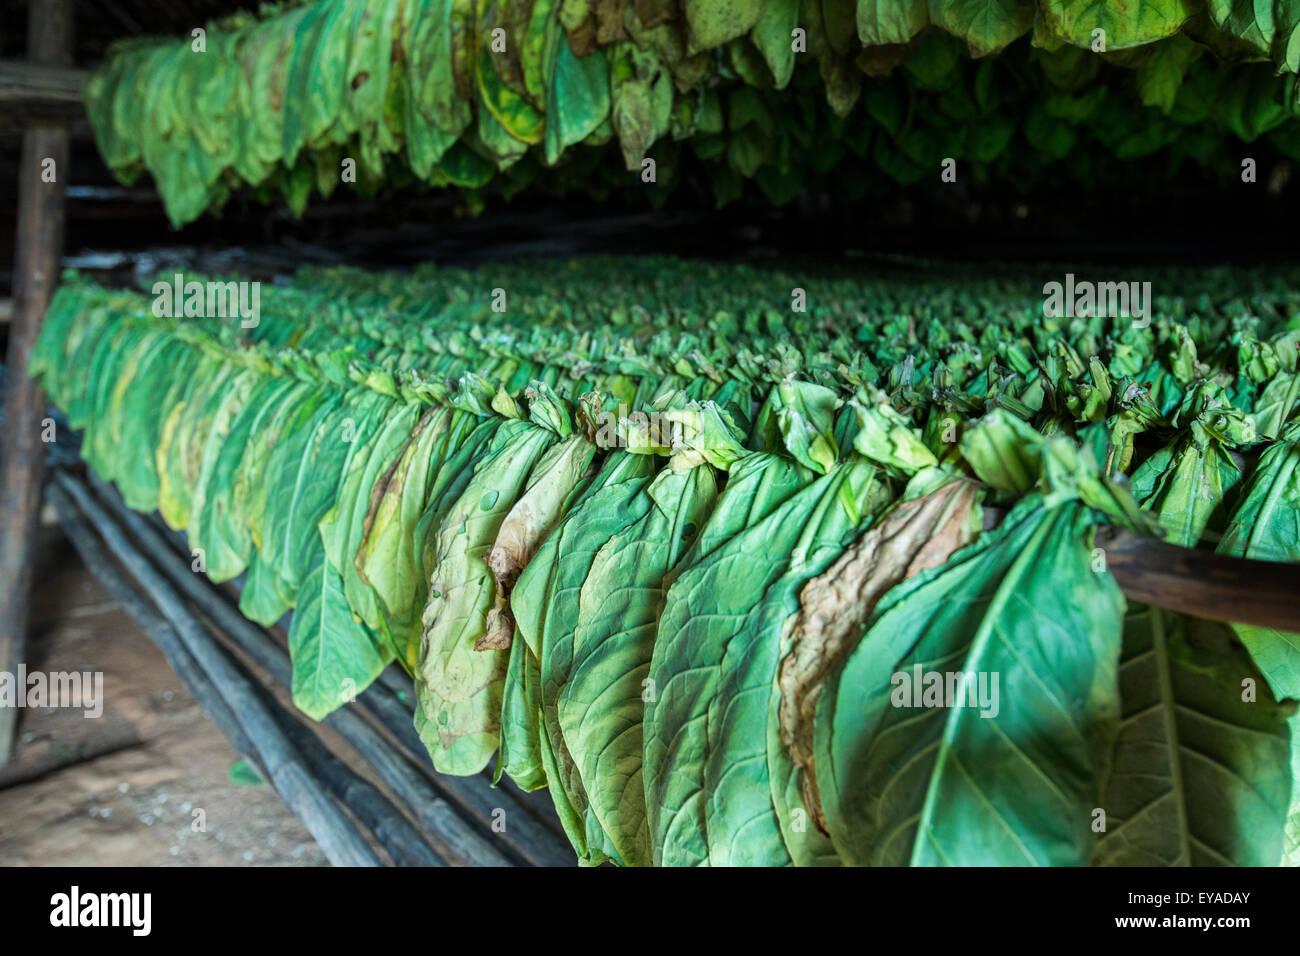 Tobacco leaves hanging in a shed - Stock Image